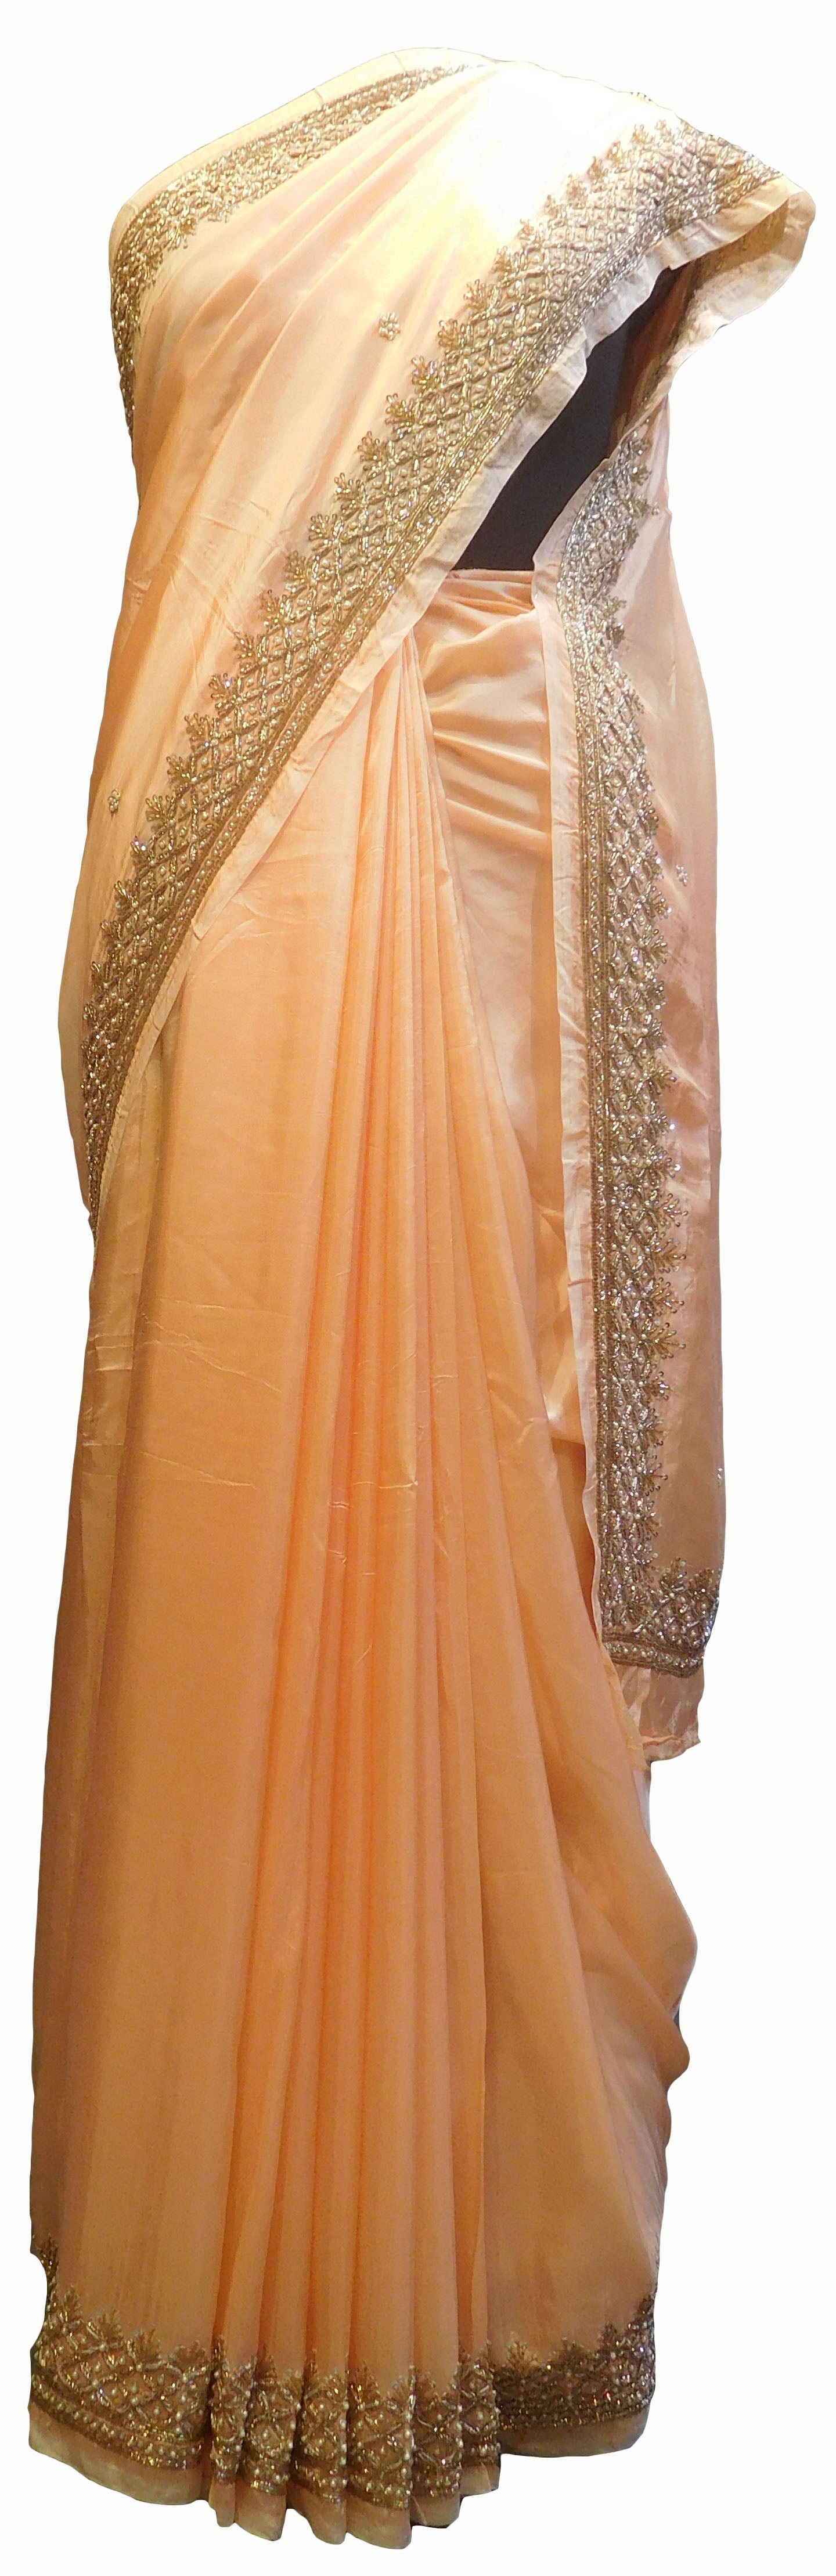 SMSAREE Peach Designer Wedding Partywear Satin Silk Pearl Bullion Sequence & Cutdana Hand Embroidery Work Bridal Saree Sari With Blouse Piece E720